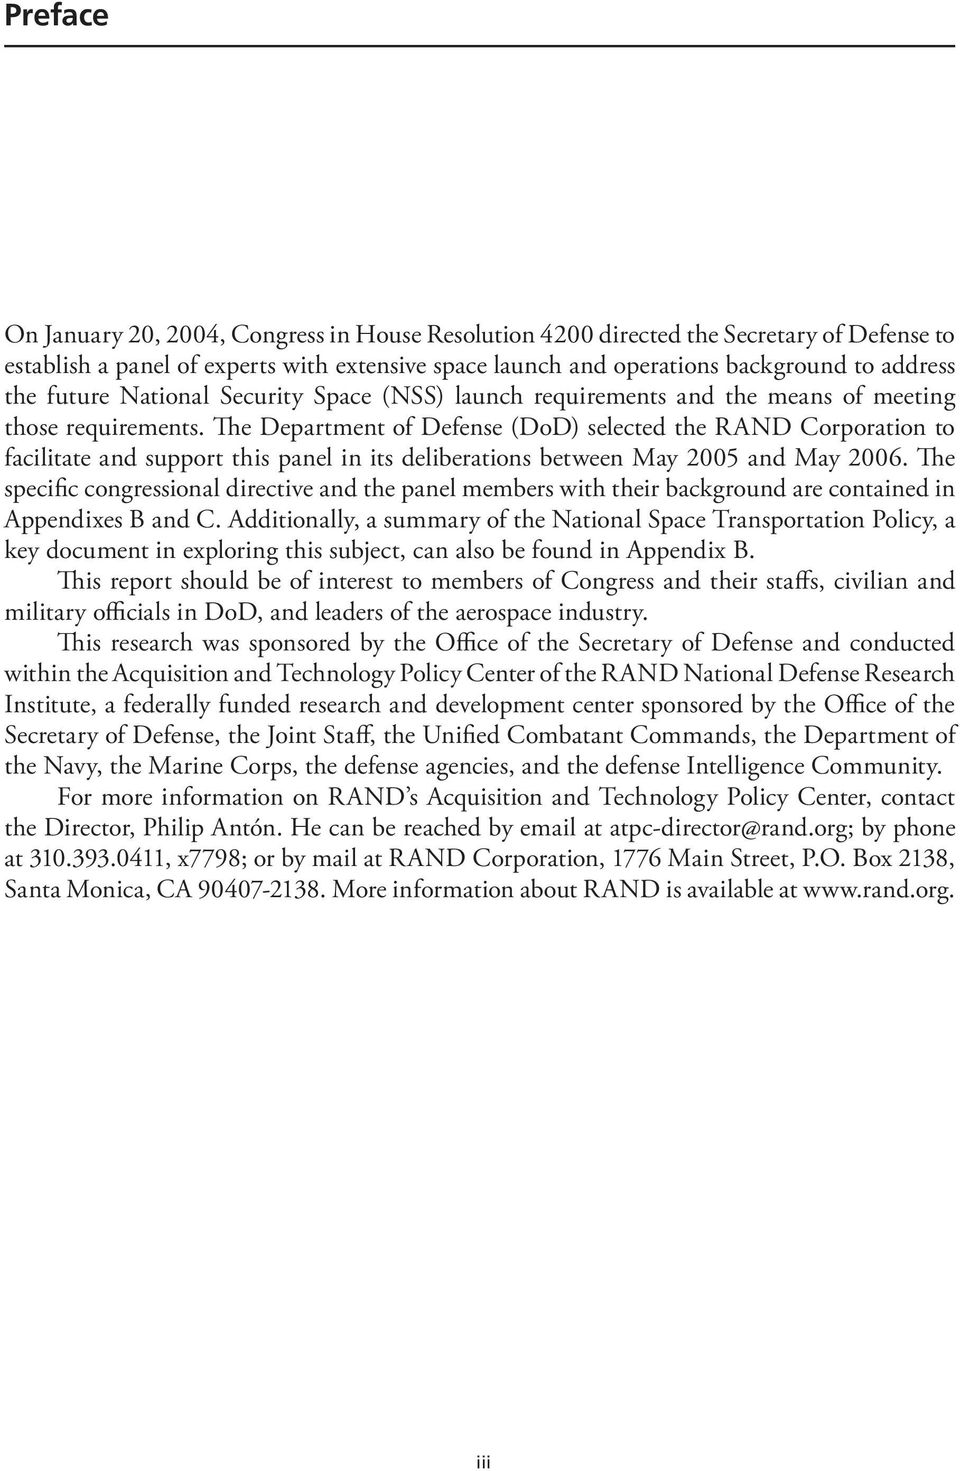 The Department of Defense (DoD) selected the RAND Corporation to facilitate and support this panel in its deliberations between May 2005 and May 2006.